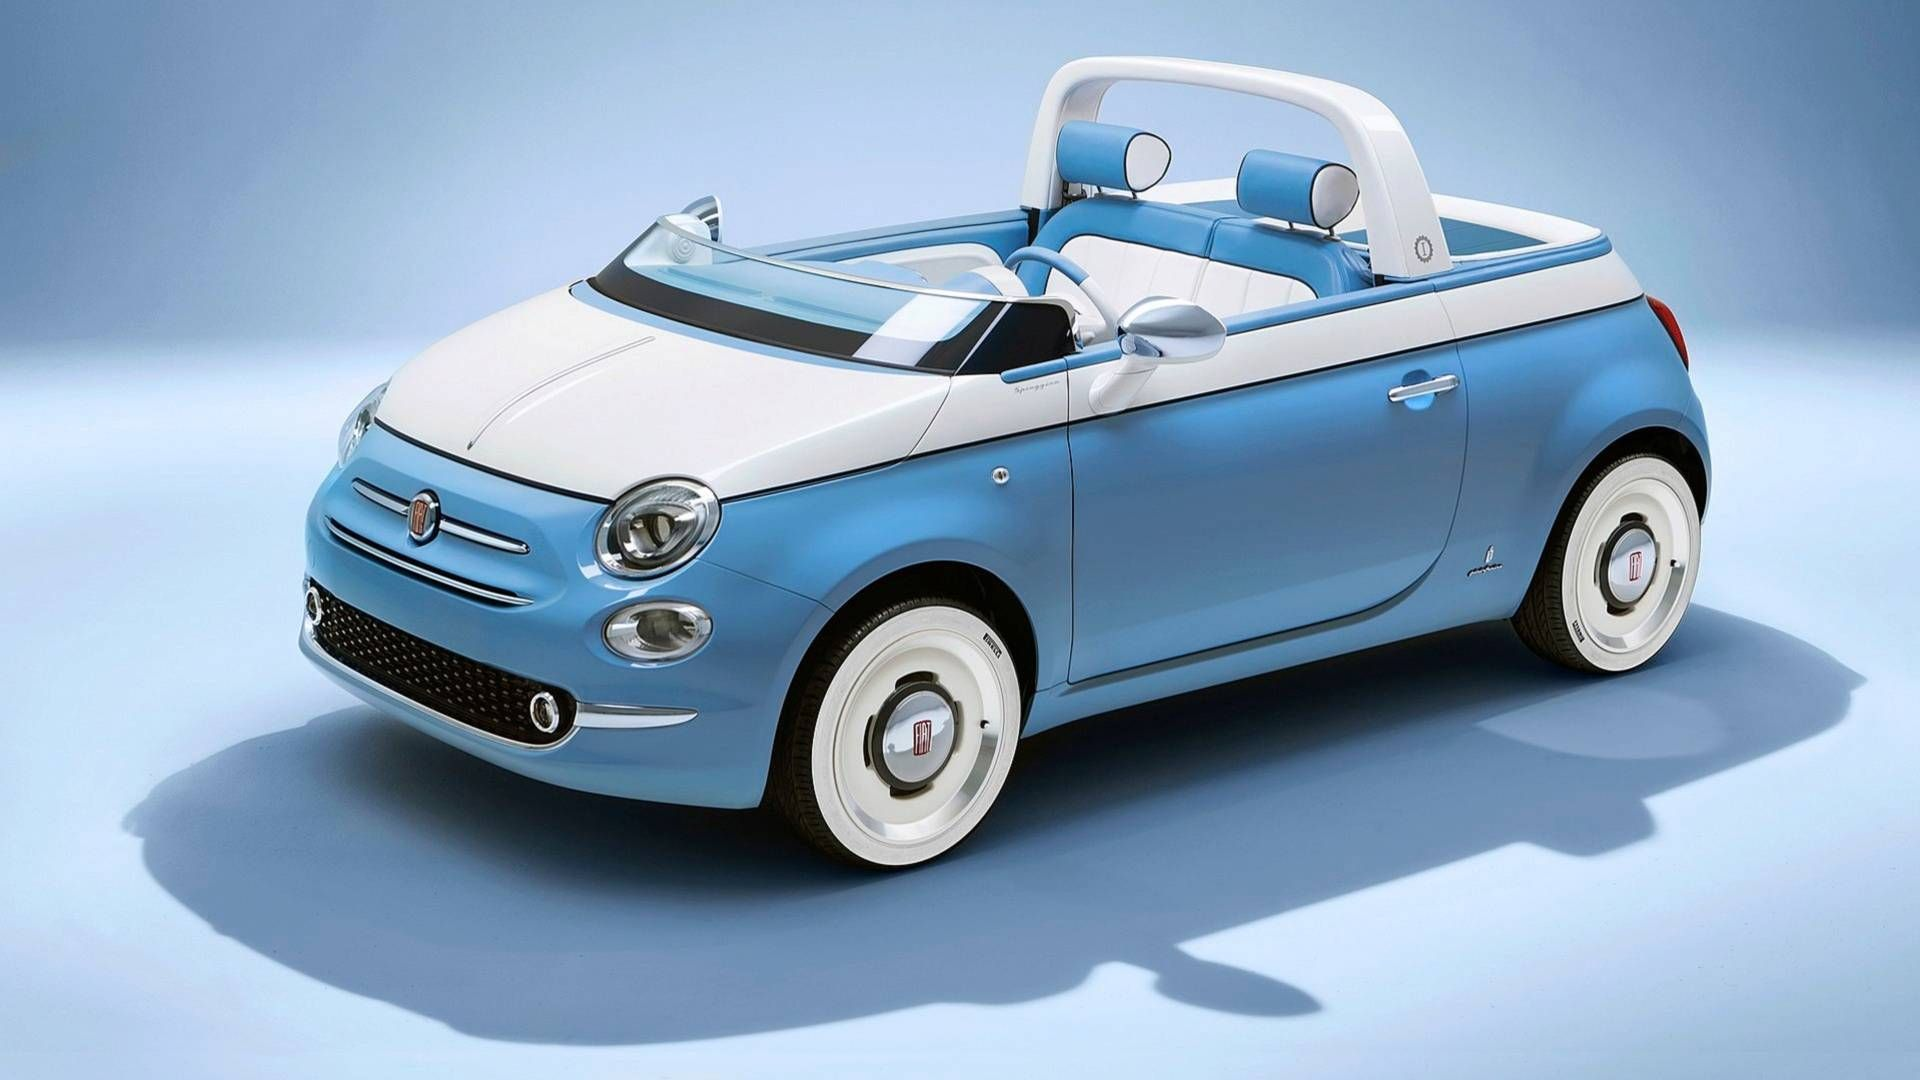 Fiat 500 By Gucci Interior With Images Fiat 500 Fiat 500